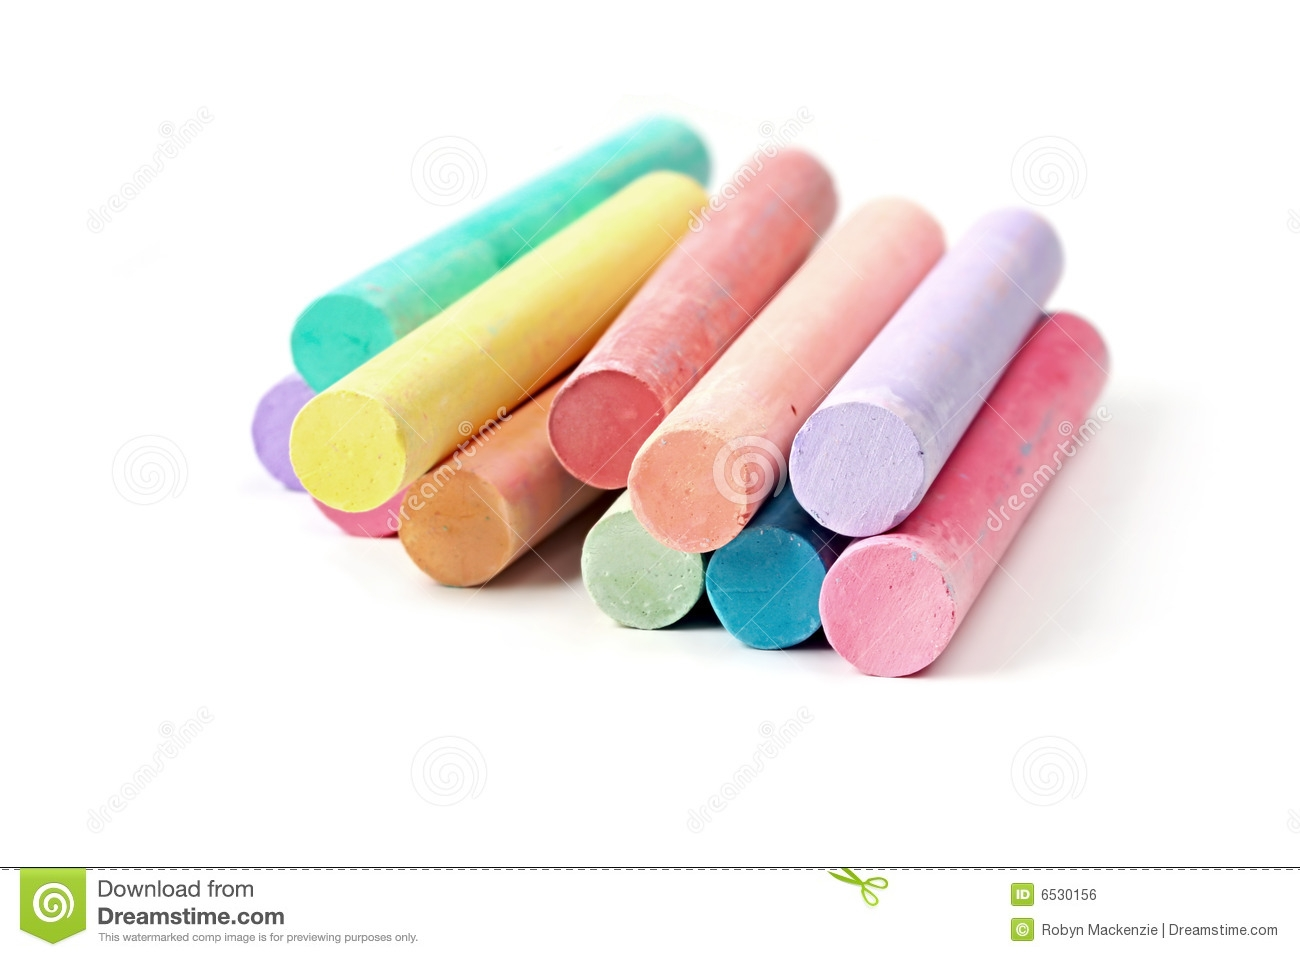 Awesome collection digital e. Chalk clipart